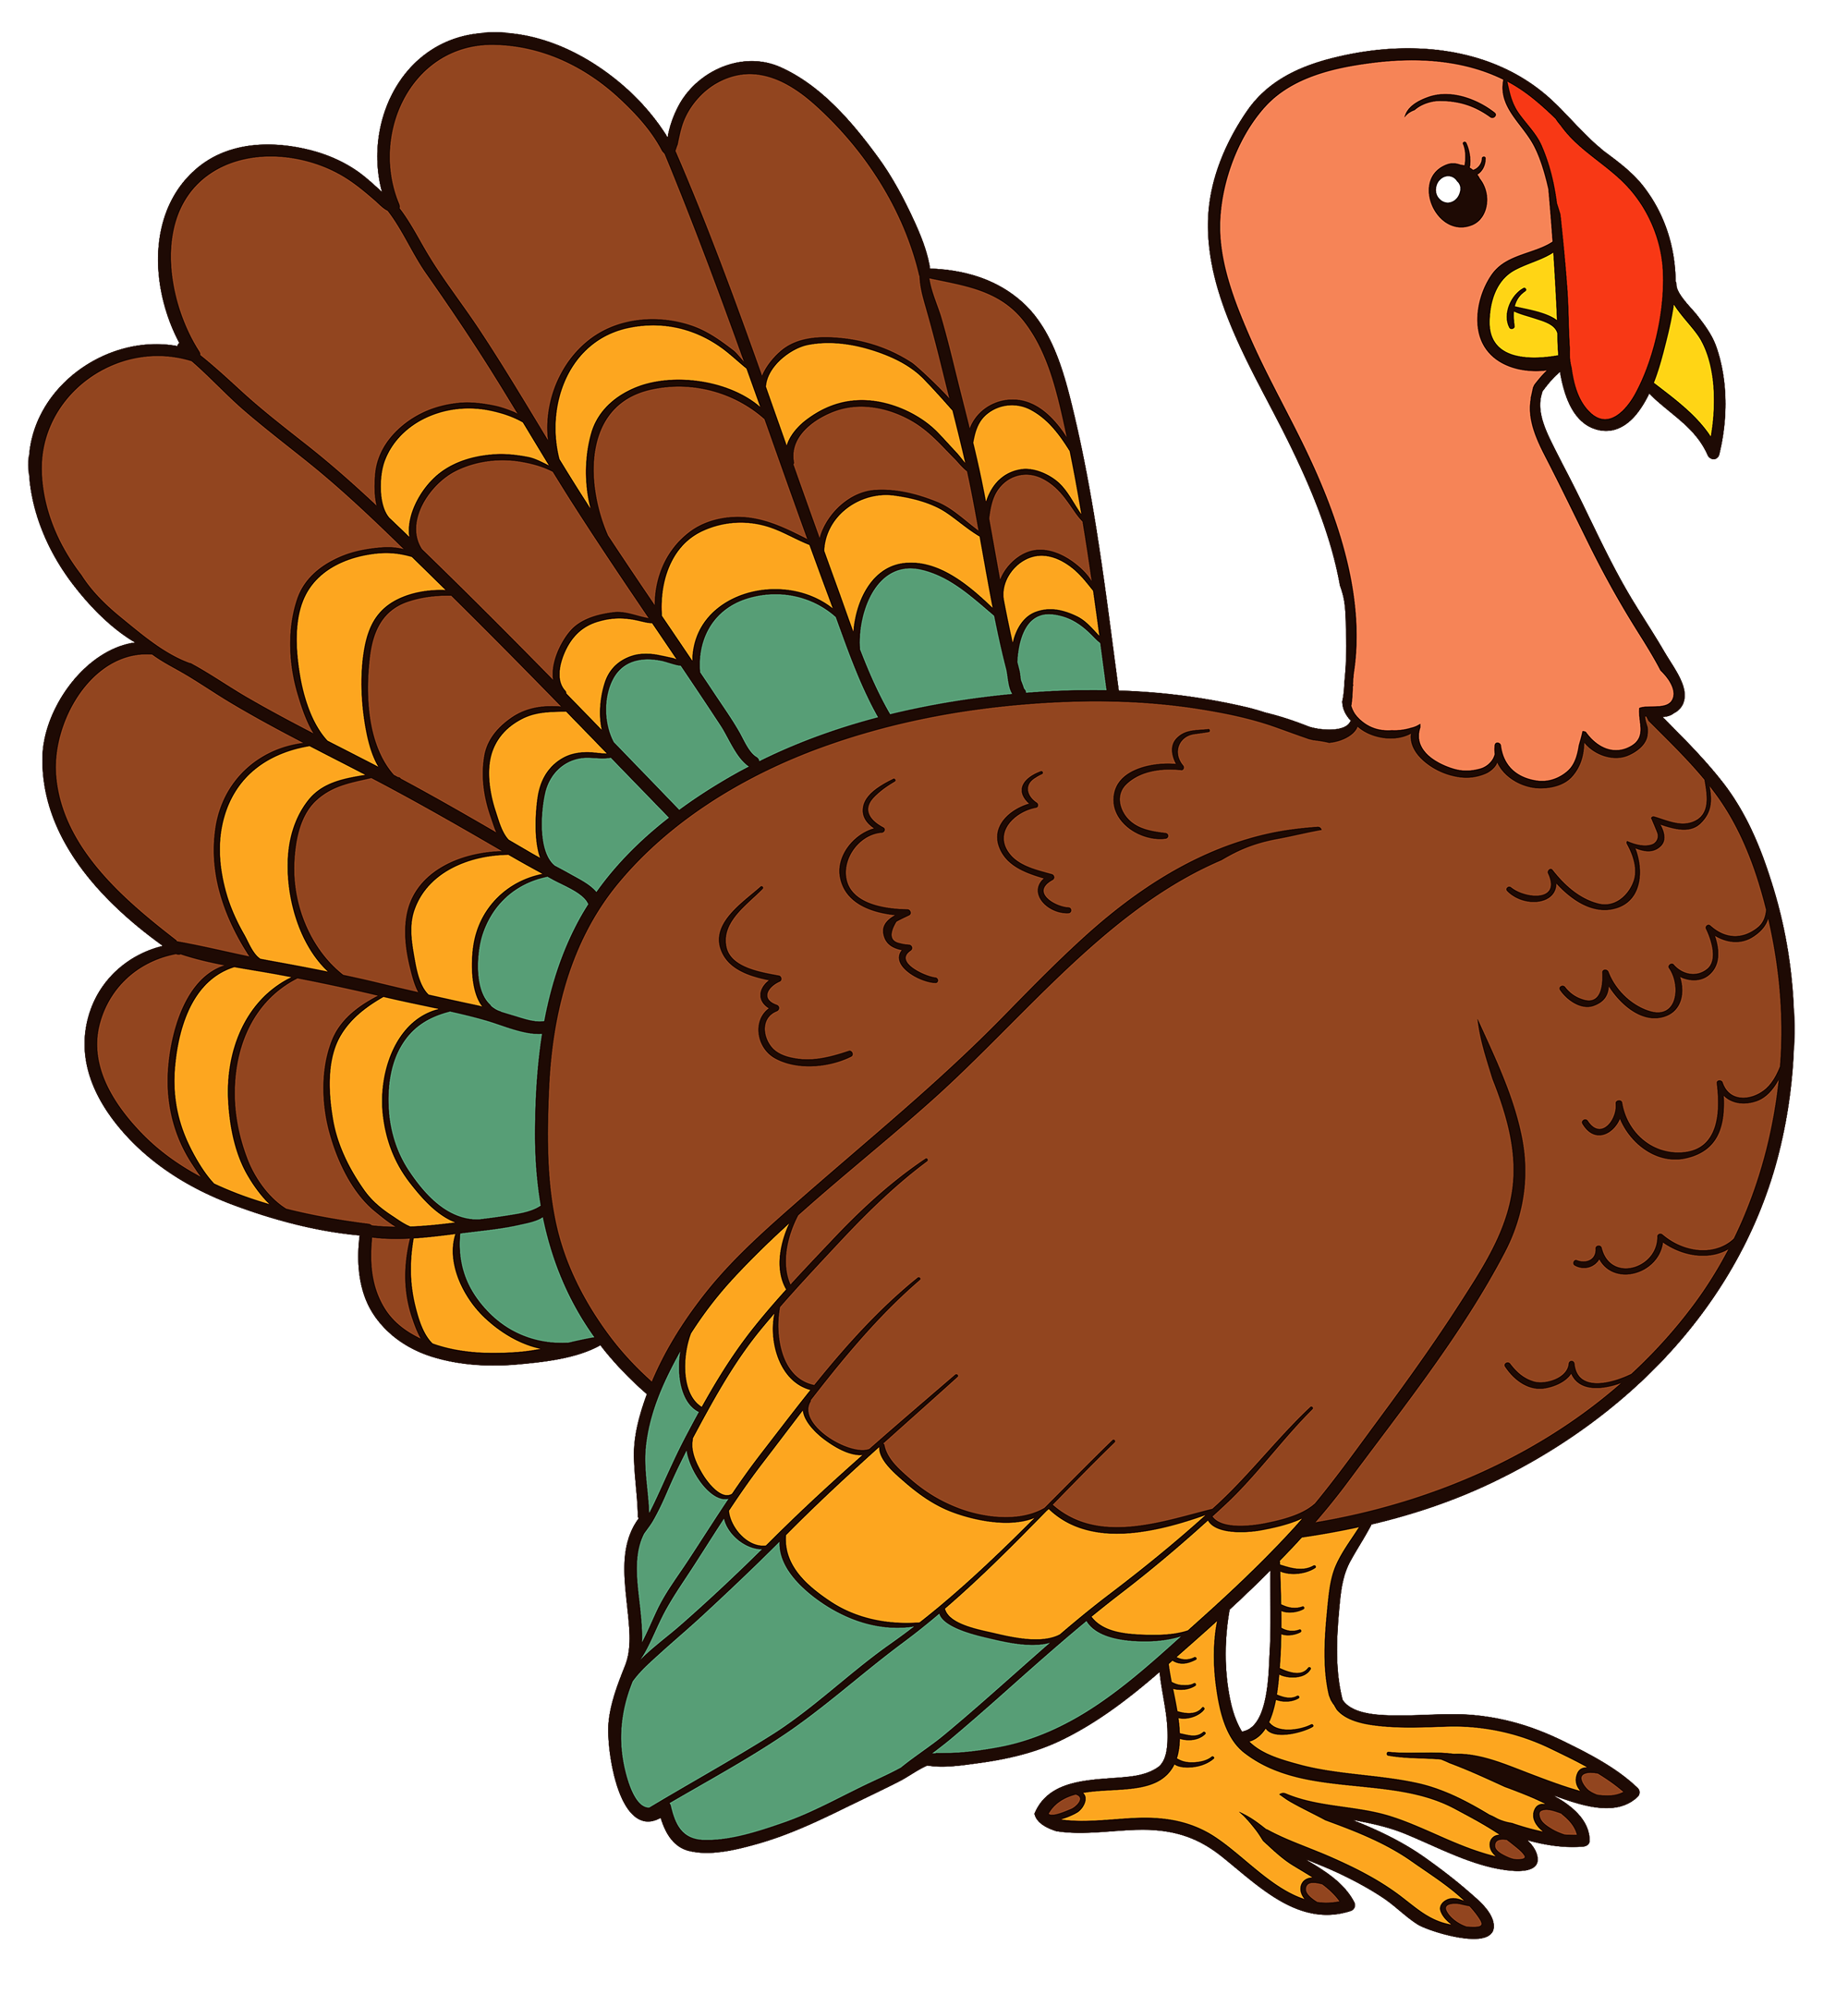 Turkey country clipart image library download Turkey Clipart - Dr. Odd image library download